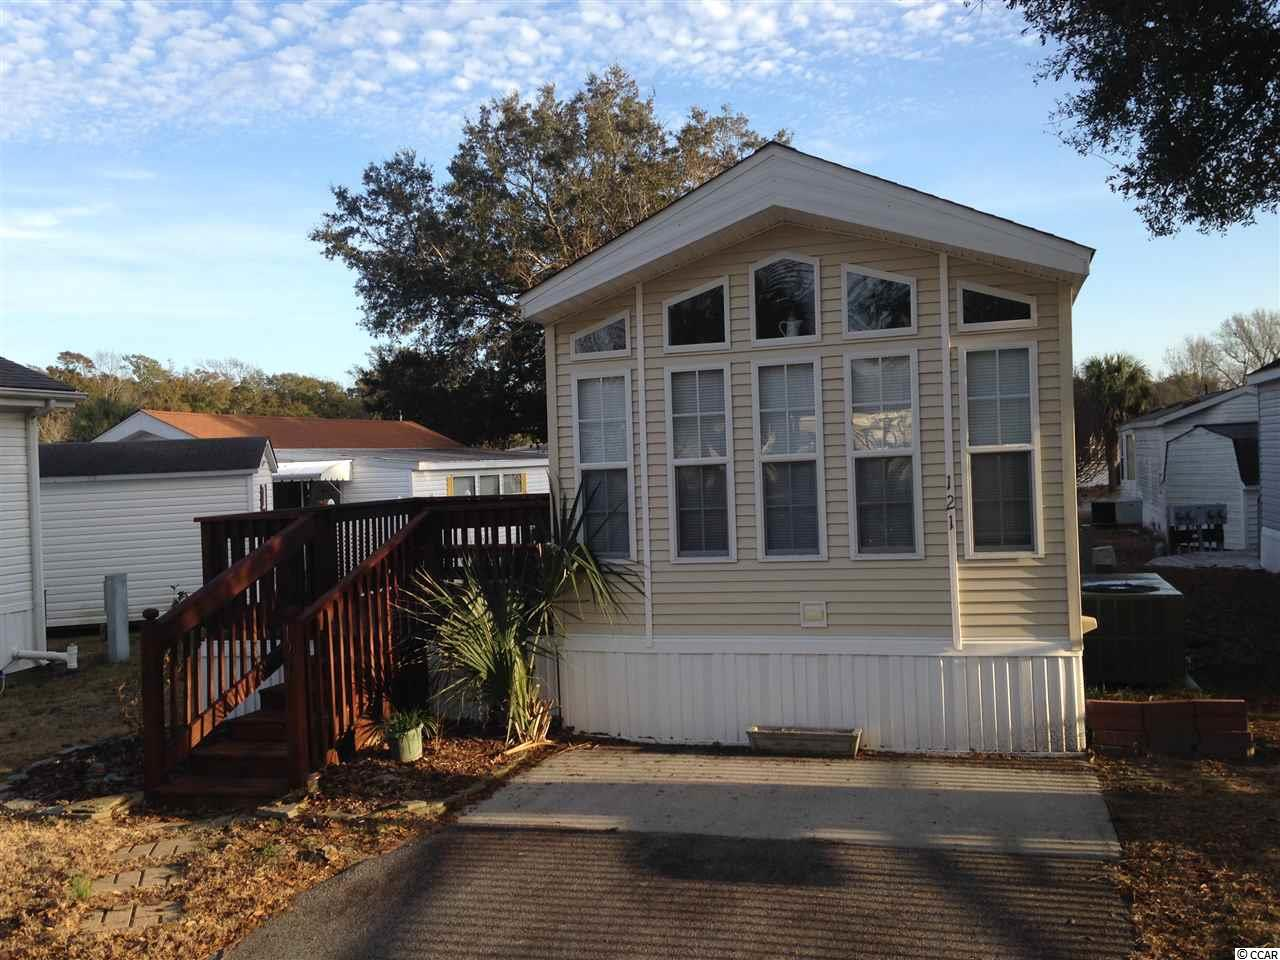 house at  Myrtle Beach RV Resort for $67,000